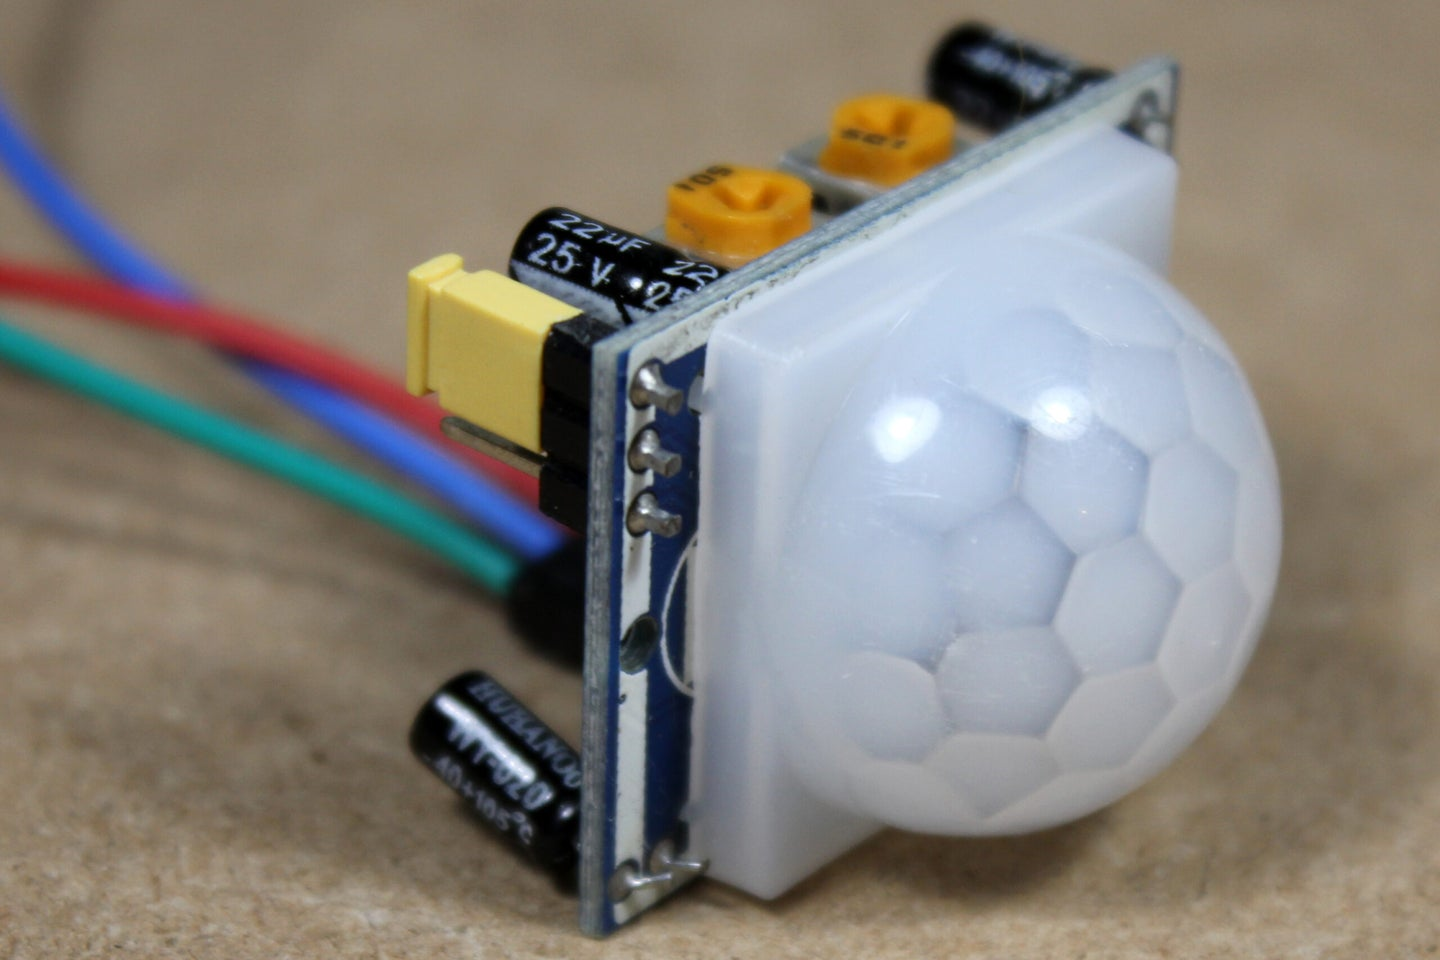 How to make your life easier with motion sensors